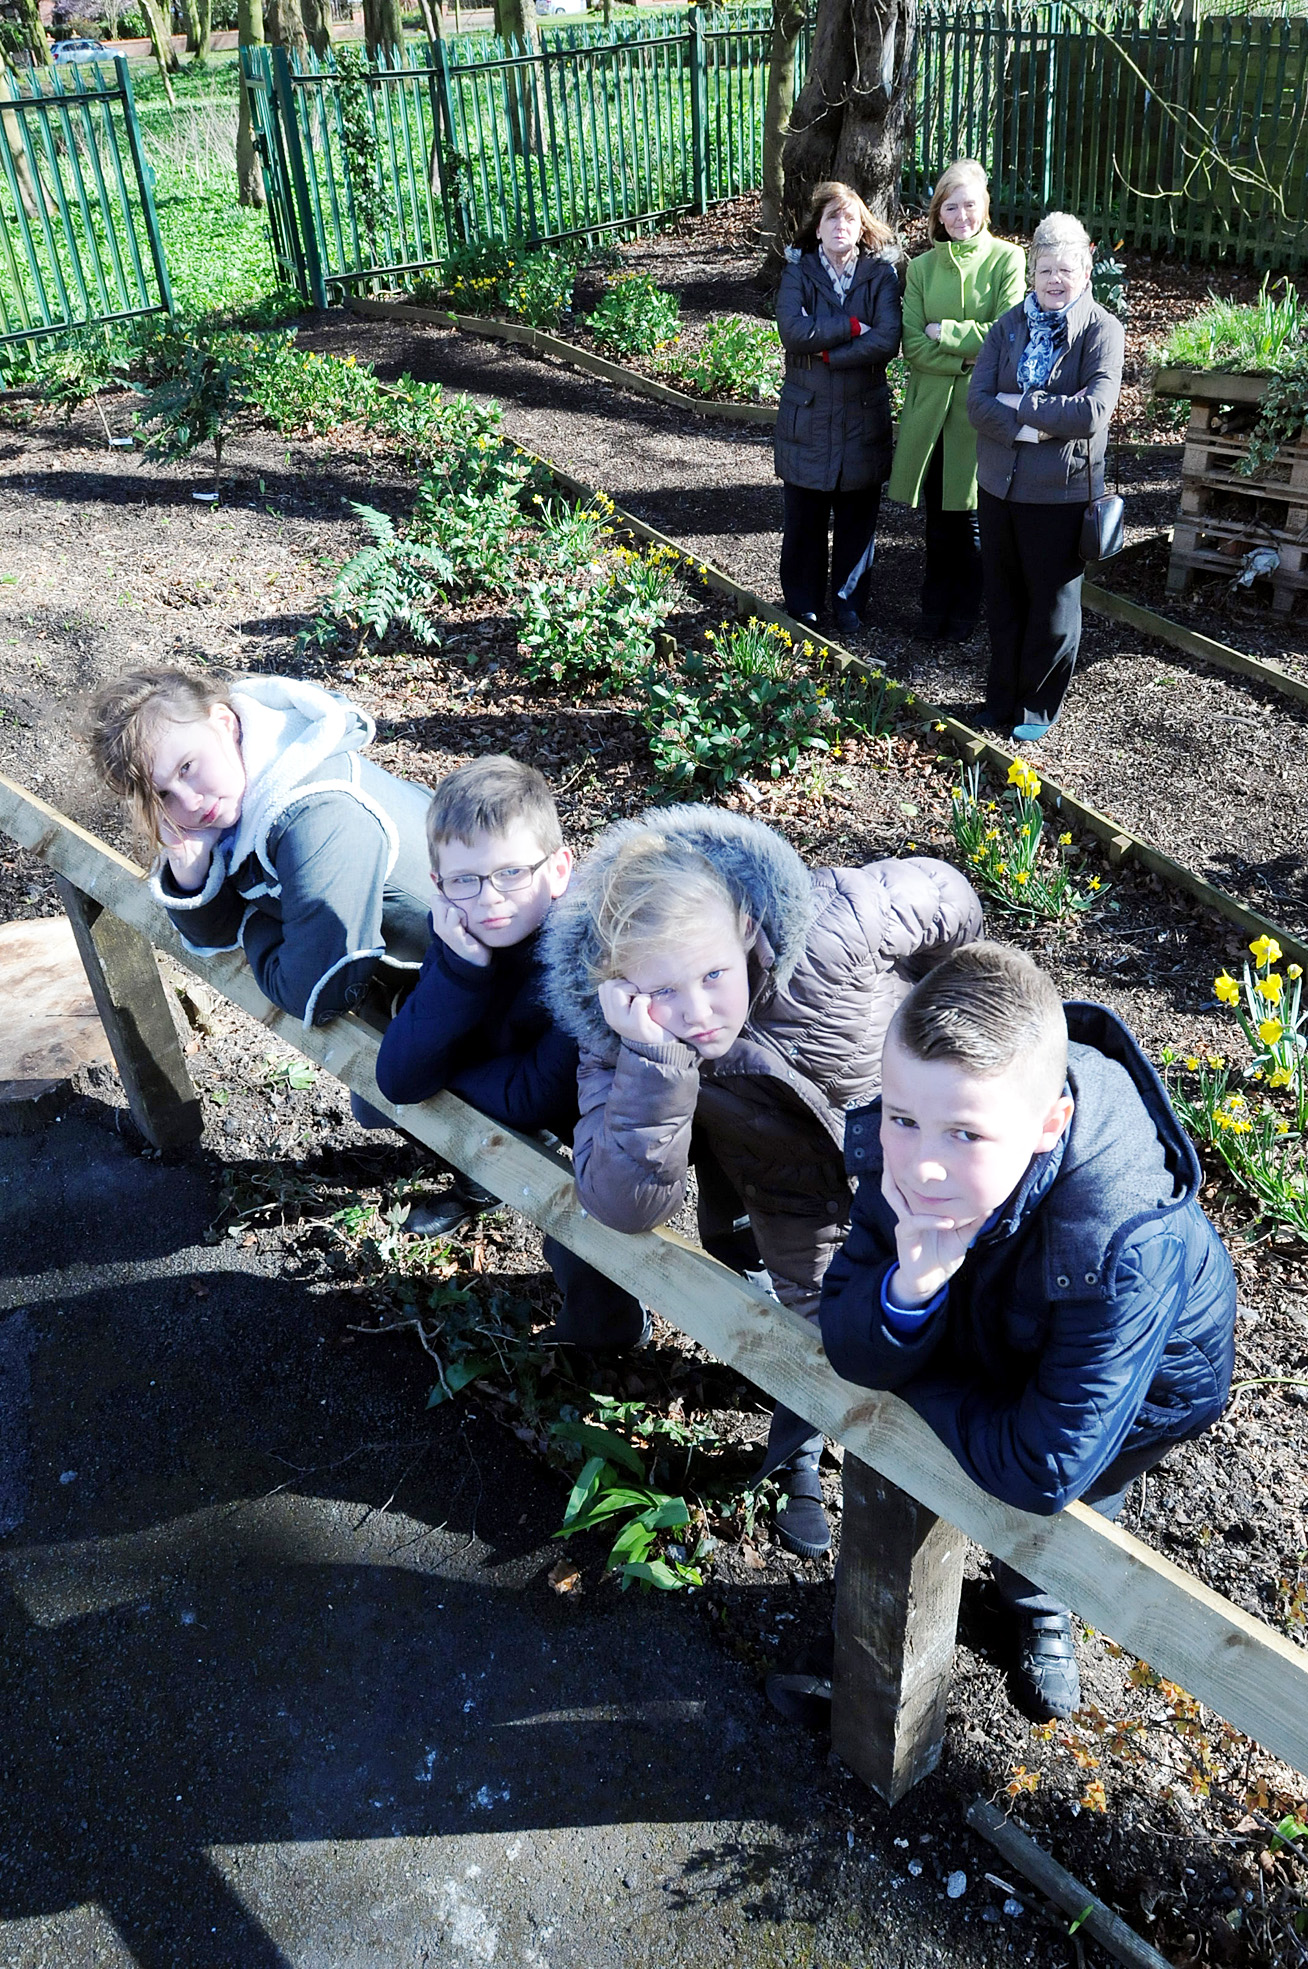 Thieves steal flowers planted by school children